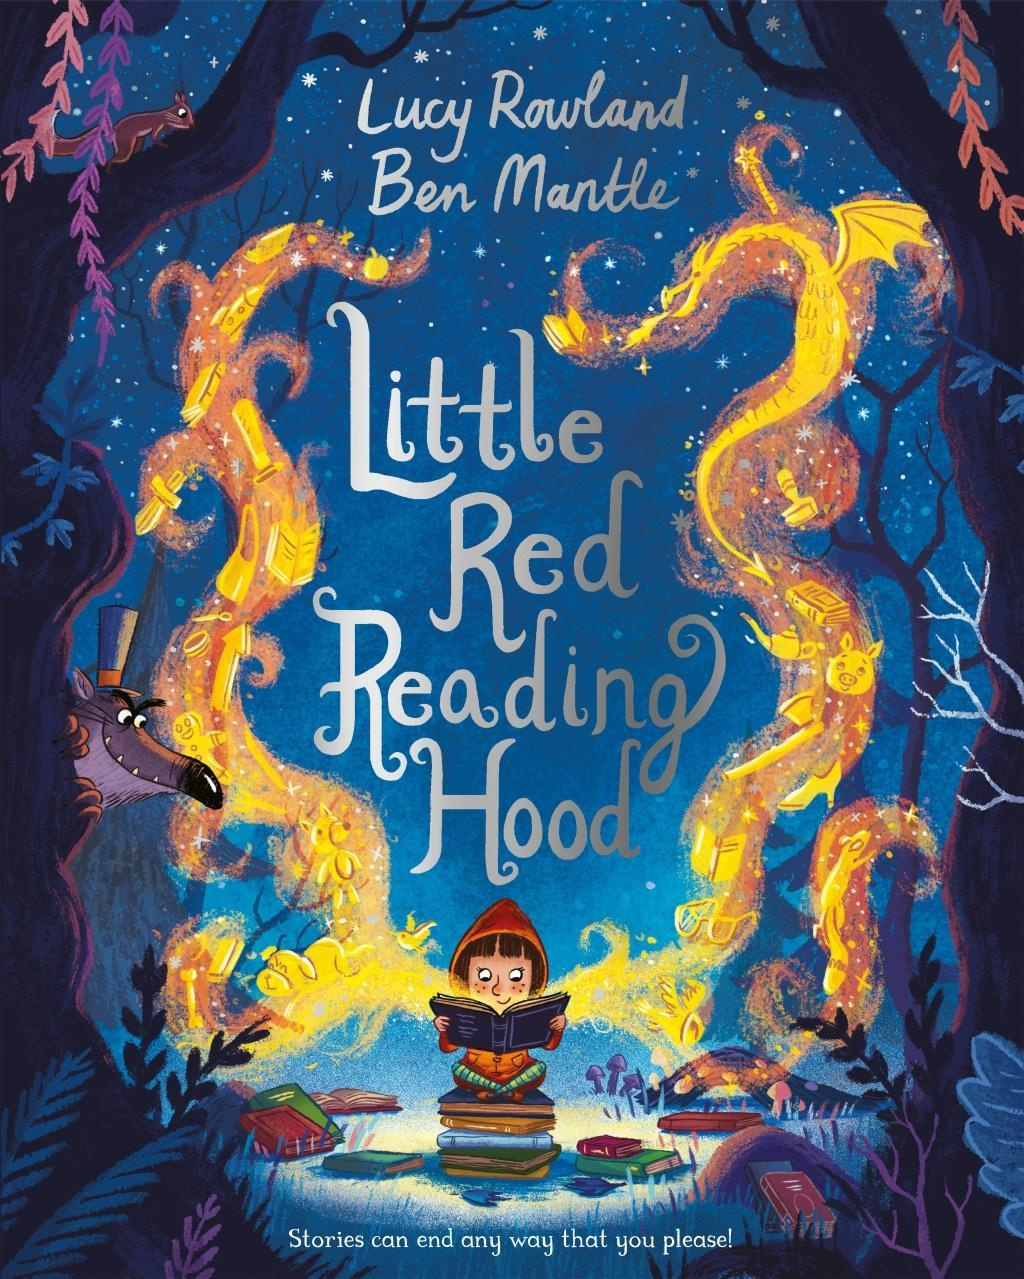 Little Red Reading Hood by Lucy Rowland, Ben Mantle, ISBN: 9781509825226